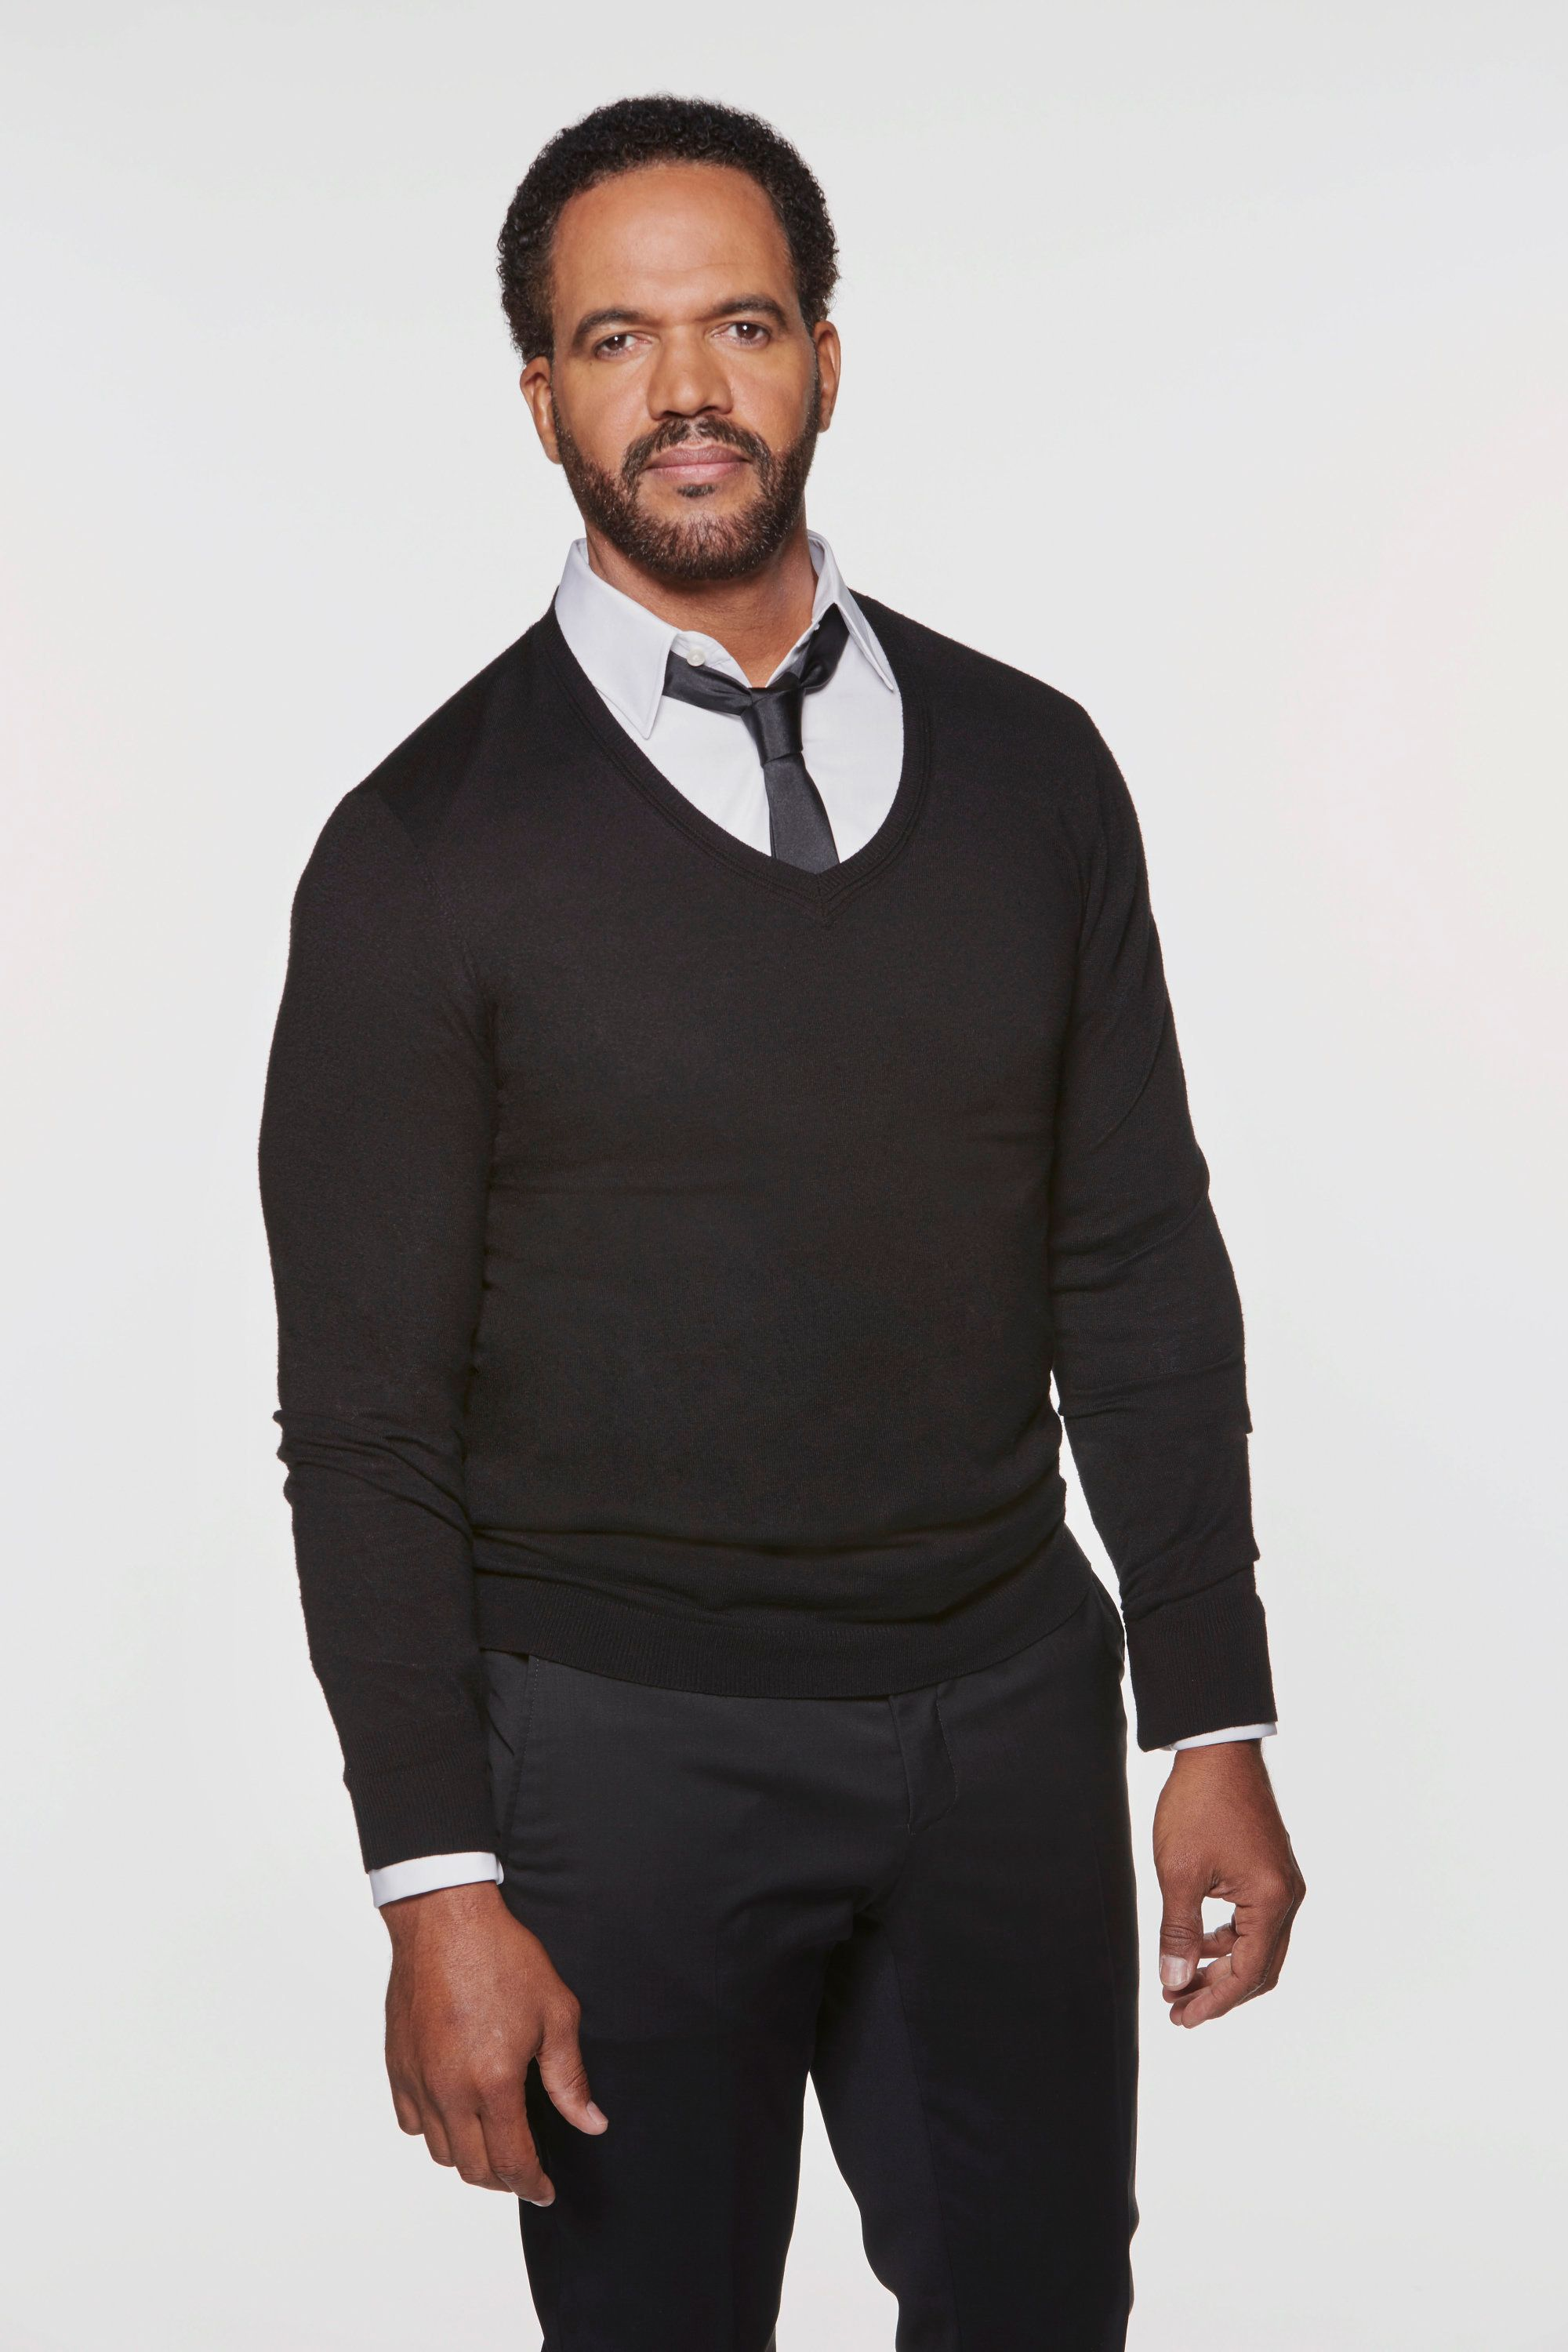 LOS ANGELES - APRIL 20: Kristoff St. John plays Neil Winters on THE YOUNG & THE RESTLESS. (Photo by Monty Brinton/CBS via Getty Images)